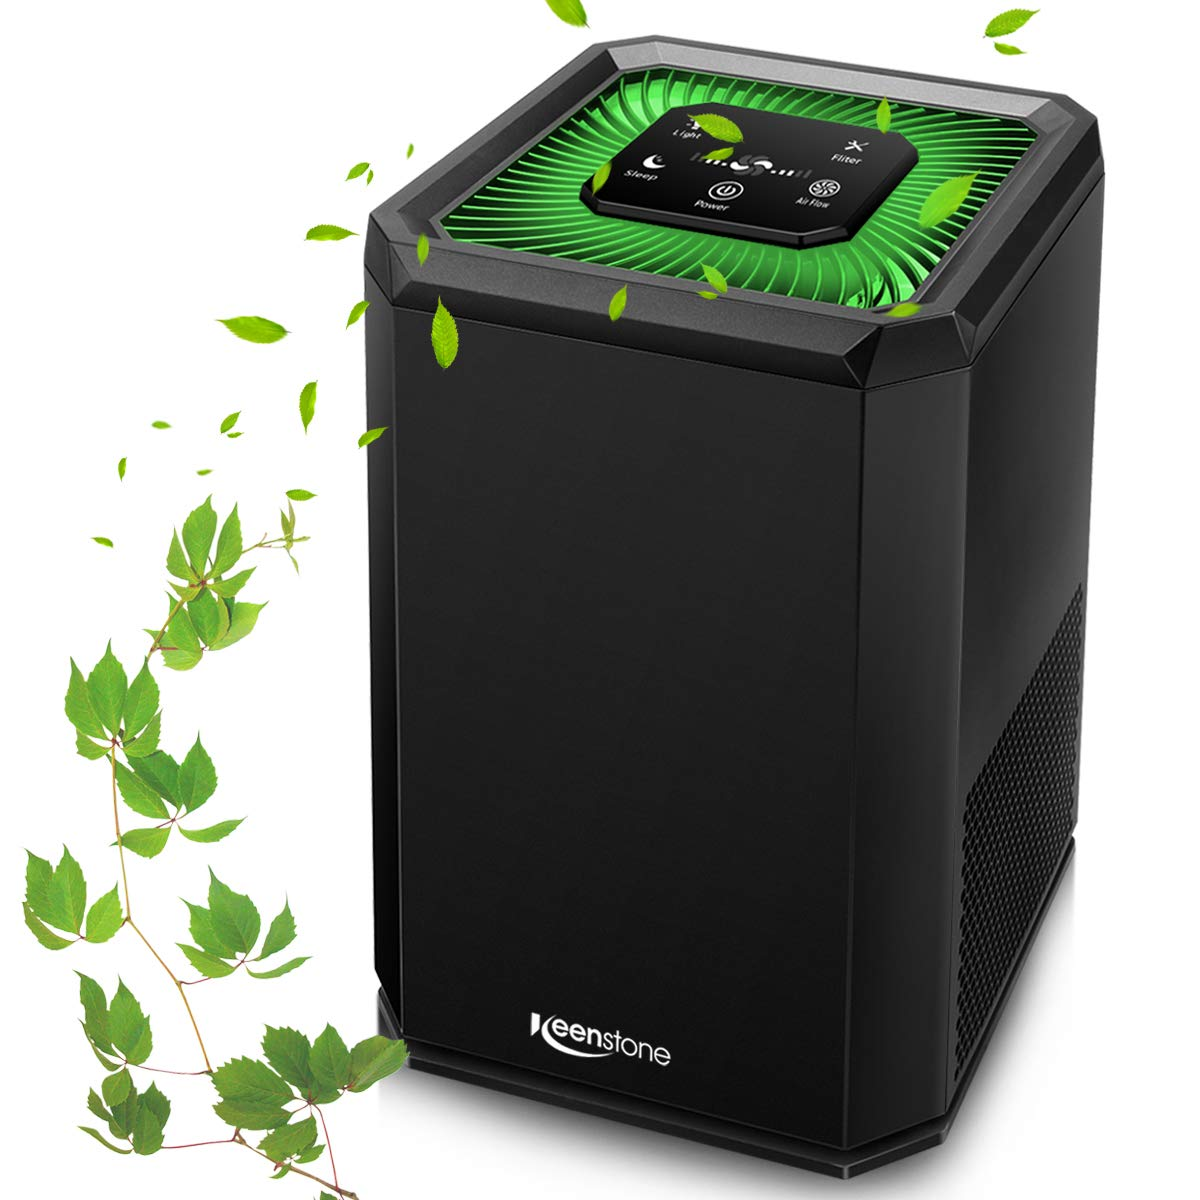 Air Purifier for Home with True HEPA Filter, 5 Speed Settings, 3 Stage Filtration, DC Motor for Smokers, Dust, Pets, Pollen, Air Cleaner with High CADR 130m³/H, Night Light for Bedroom Office - Black